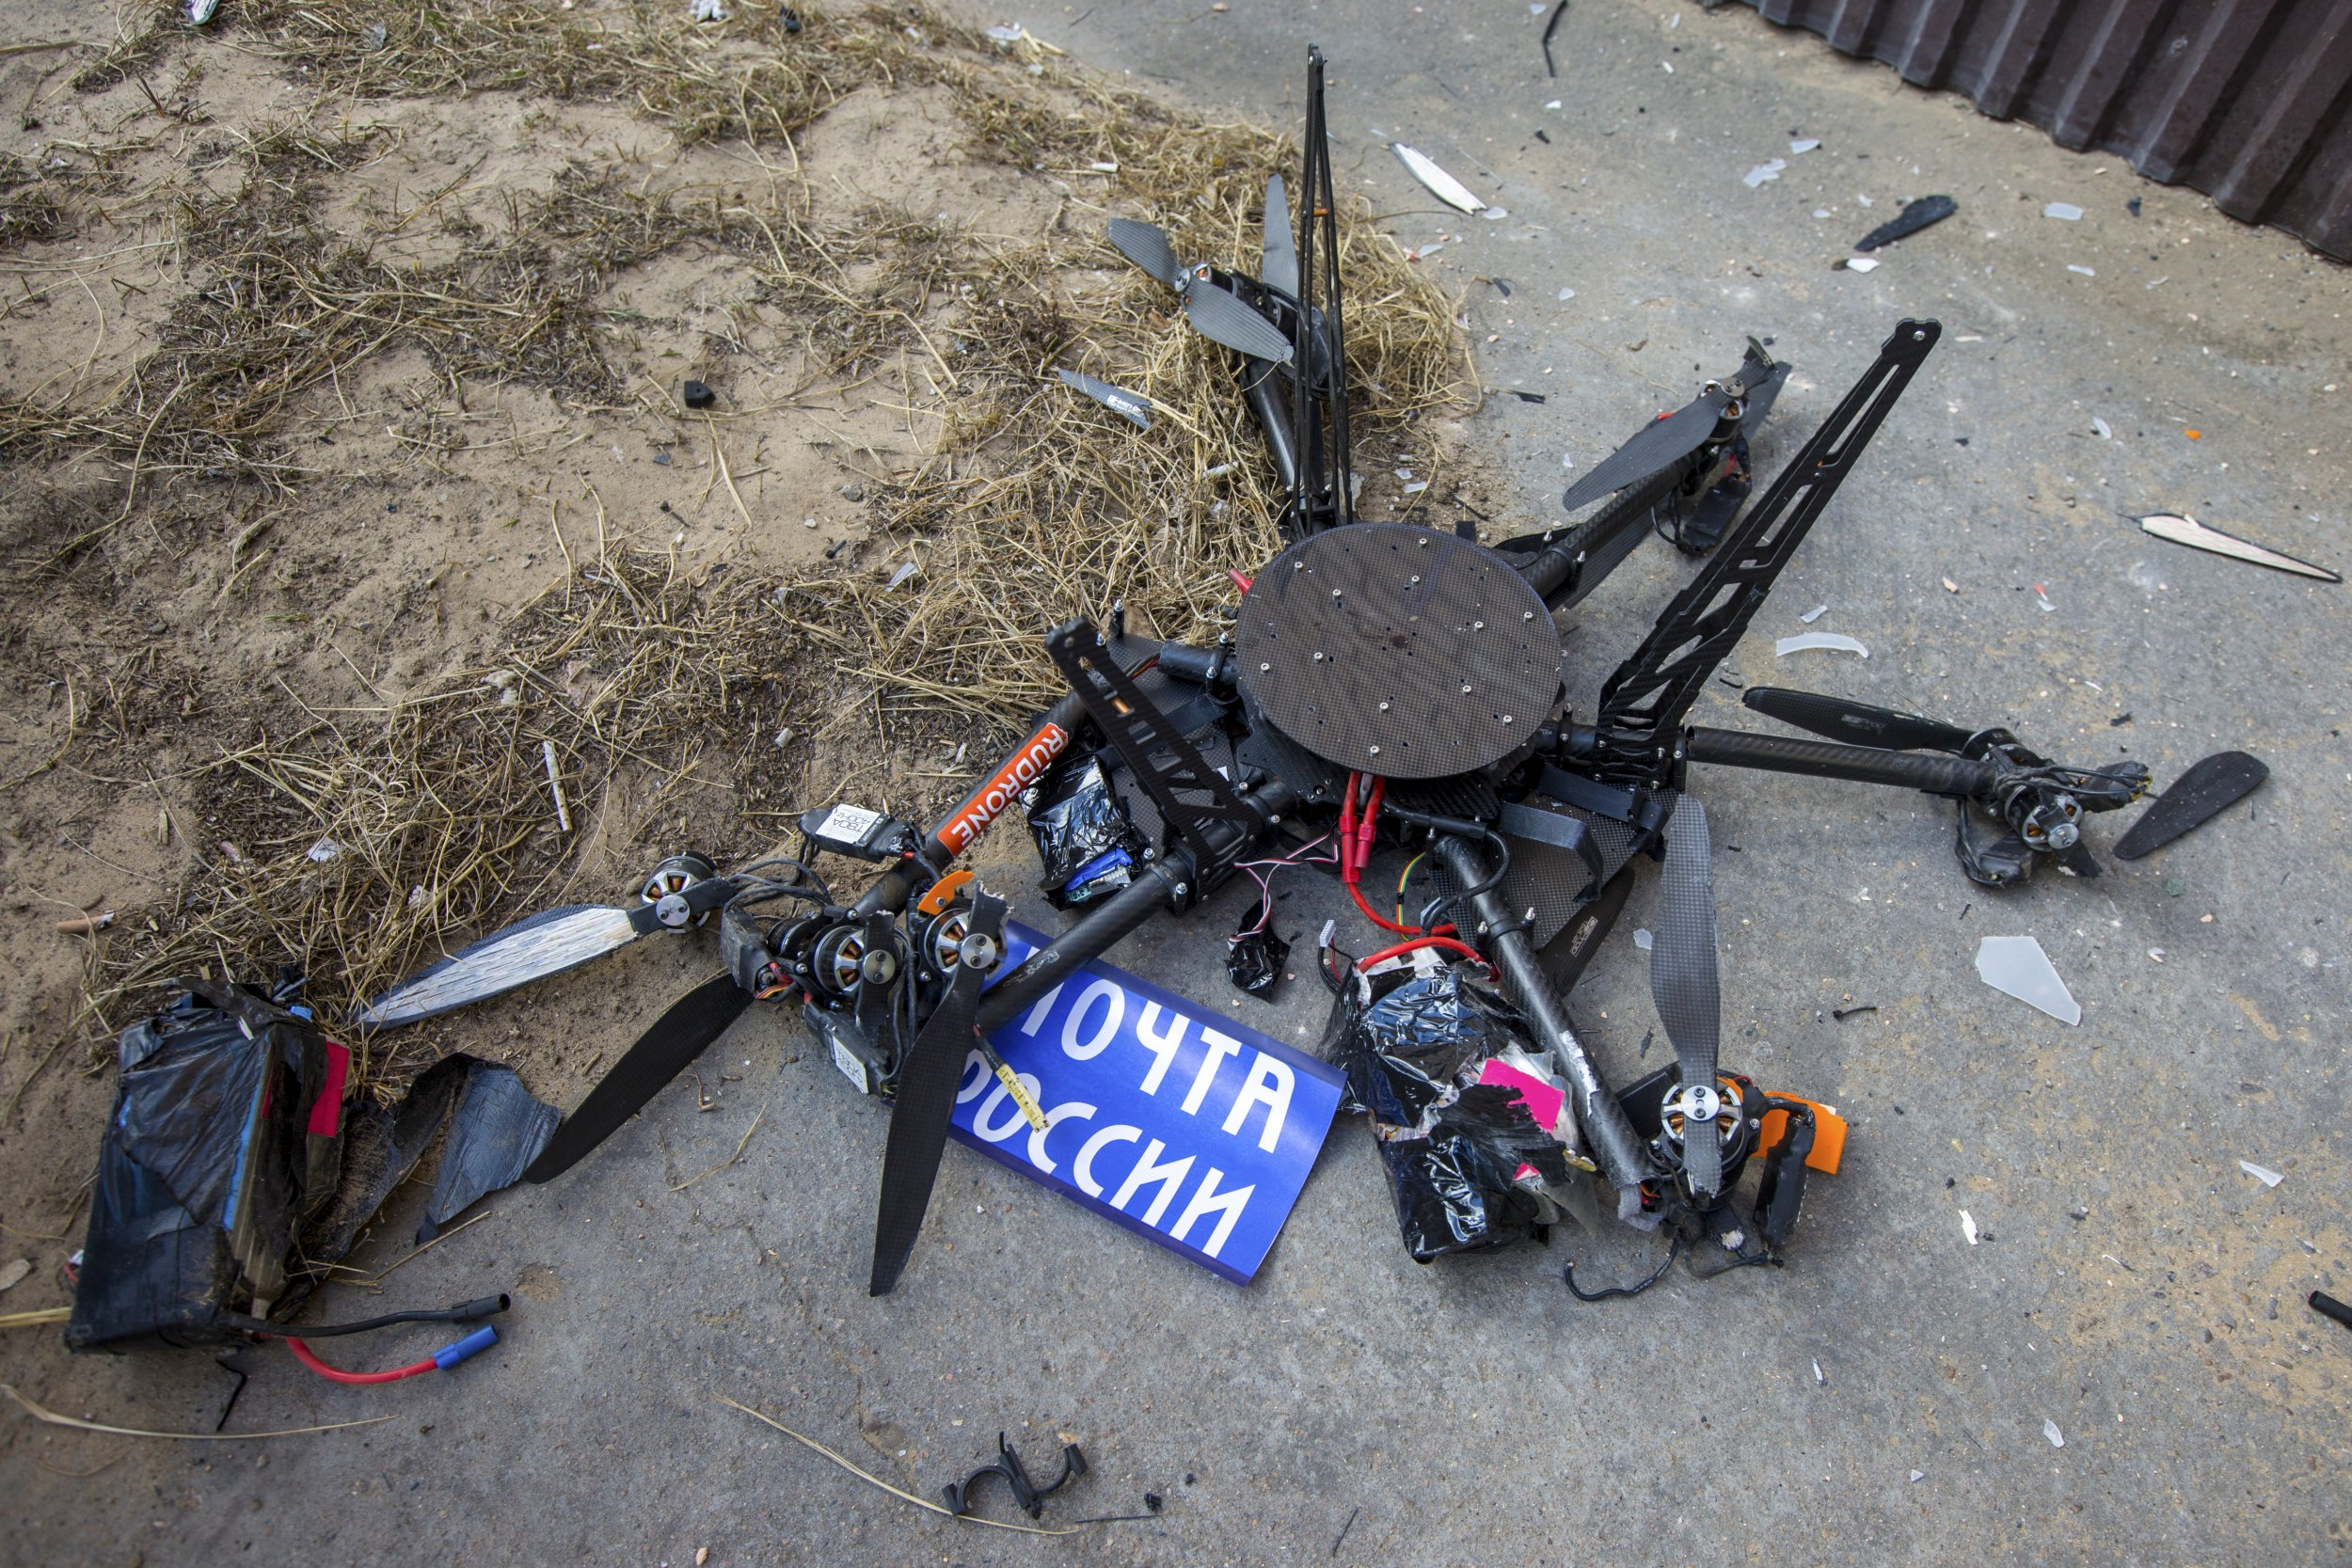 Russian Post drone crash